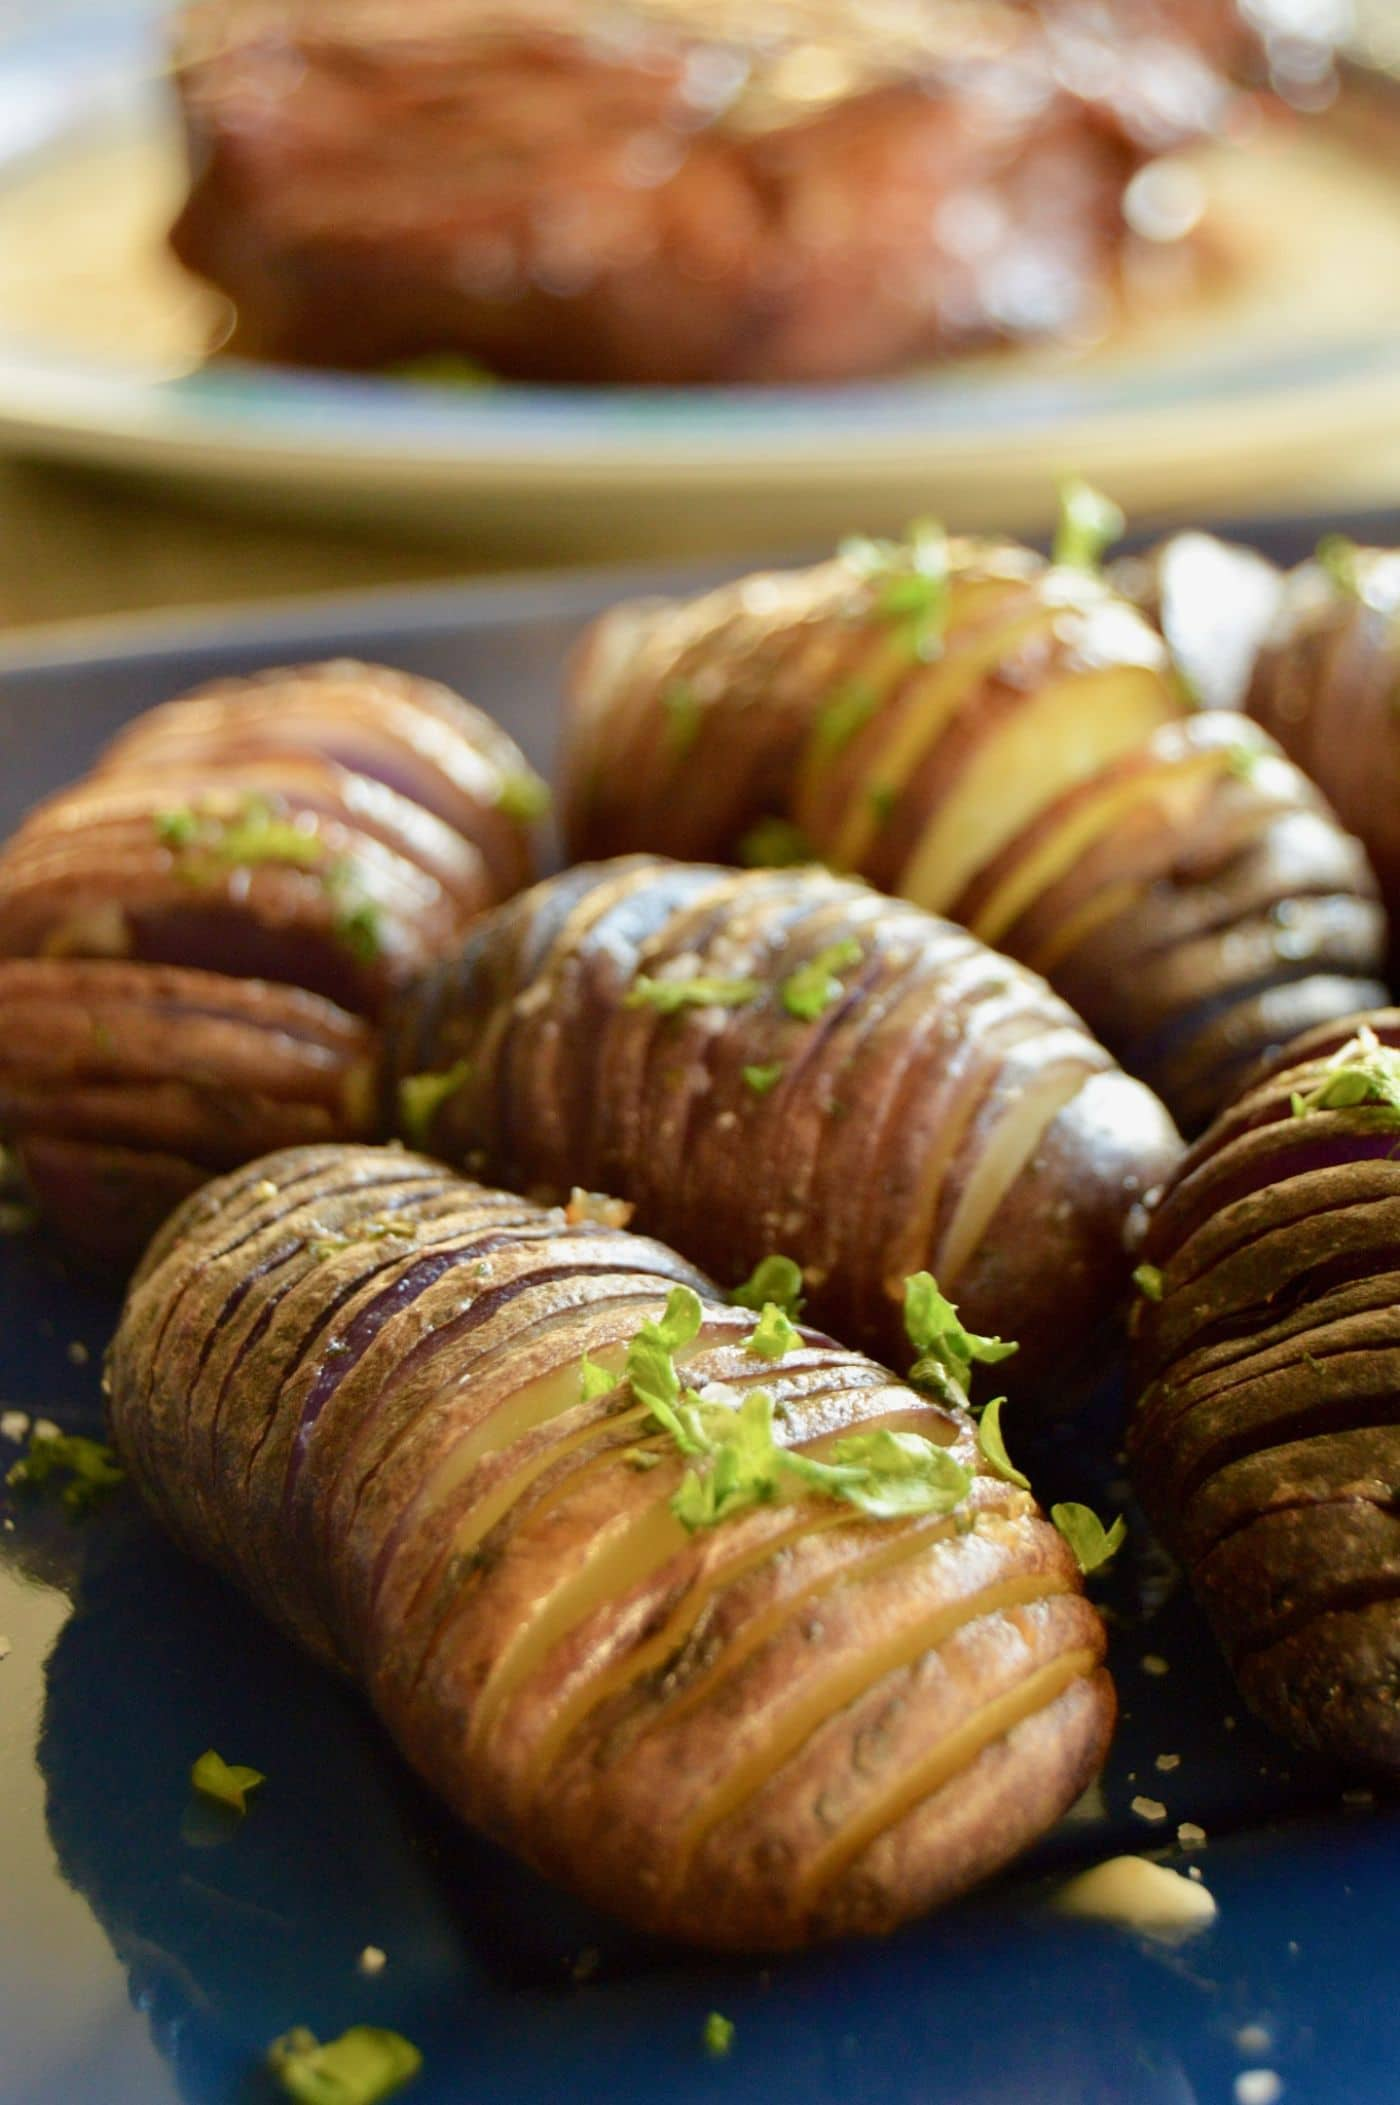 Grilled Sliced thin fan potatoes otherwise known as hasselback stuffed with herbs for a healthy side dish on a plate